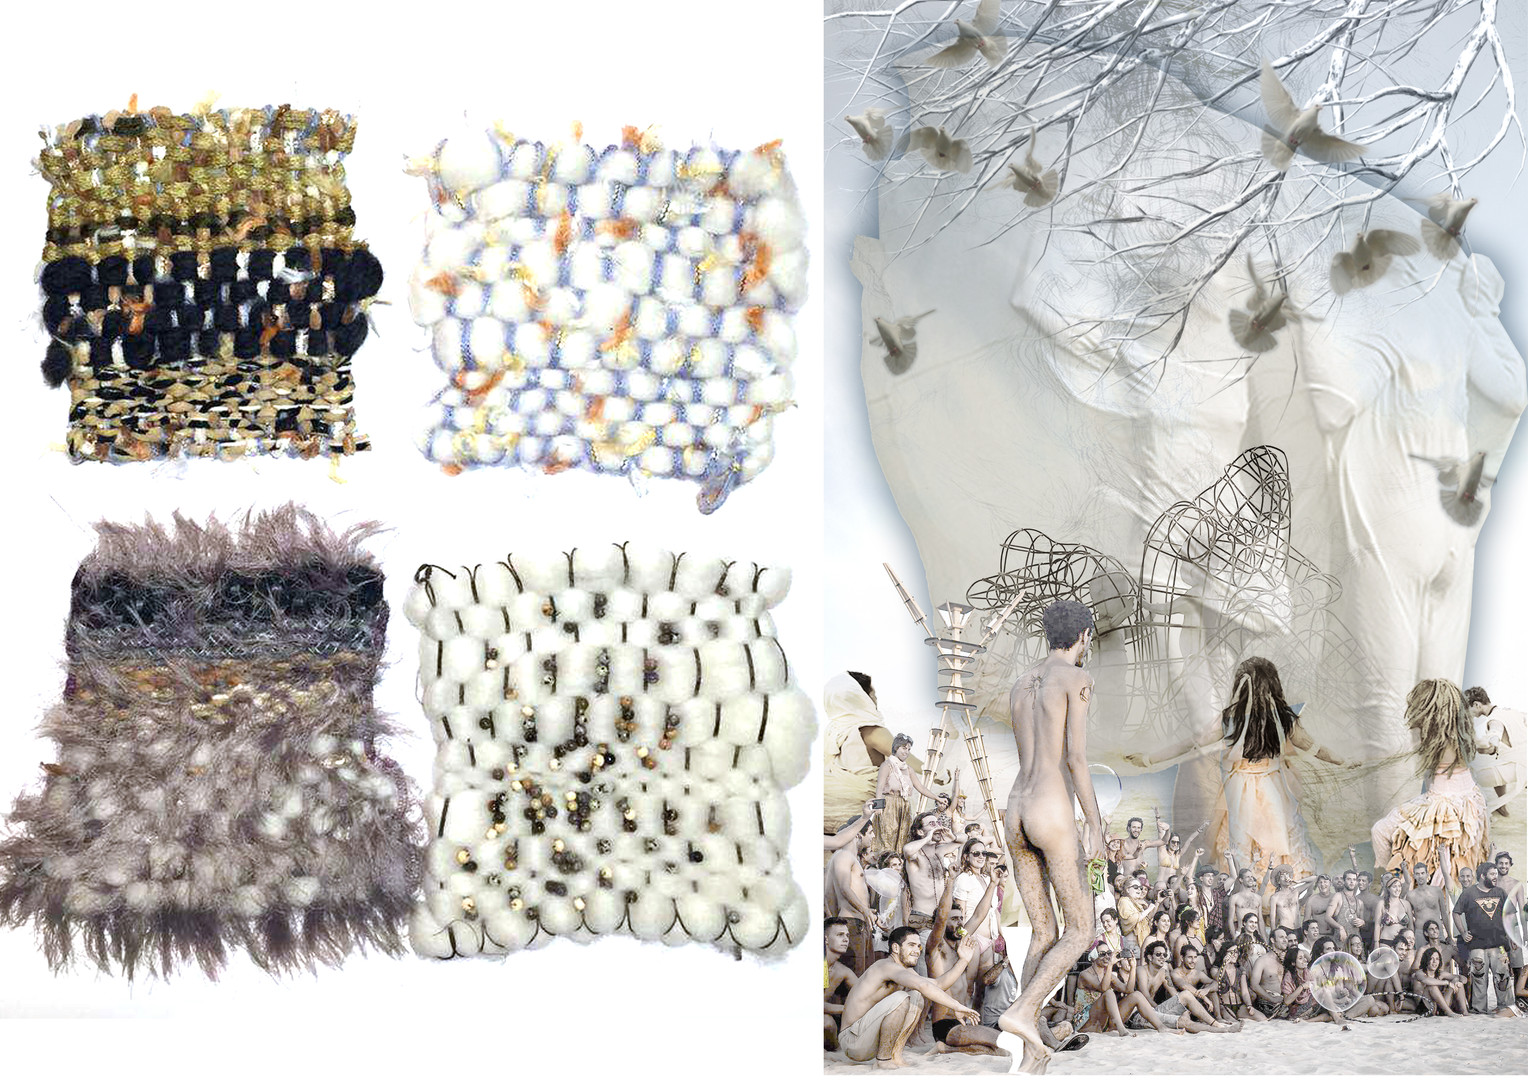 Inspiration and textiles